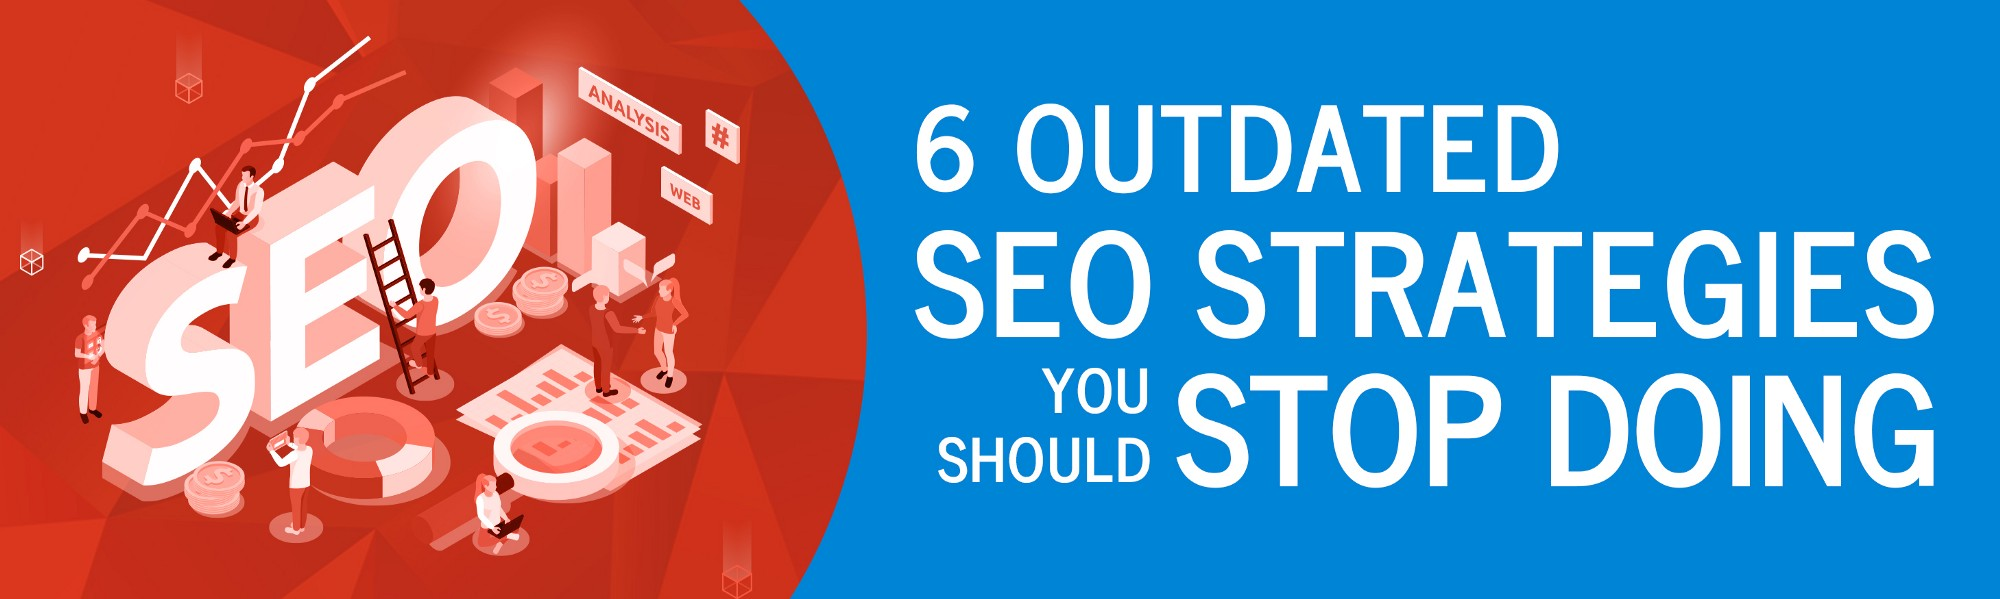 6 Outdated SEO Strategies You Should Stop Doing